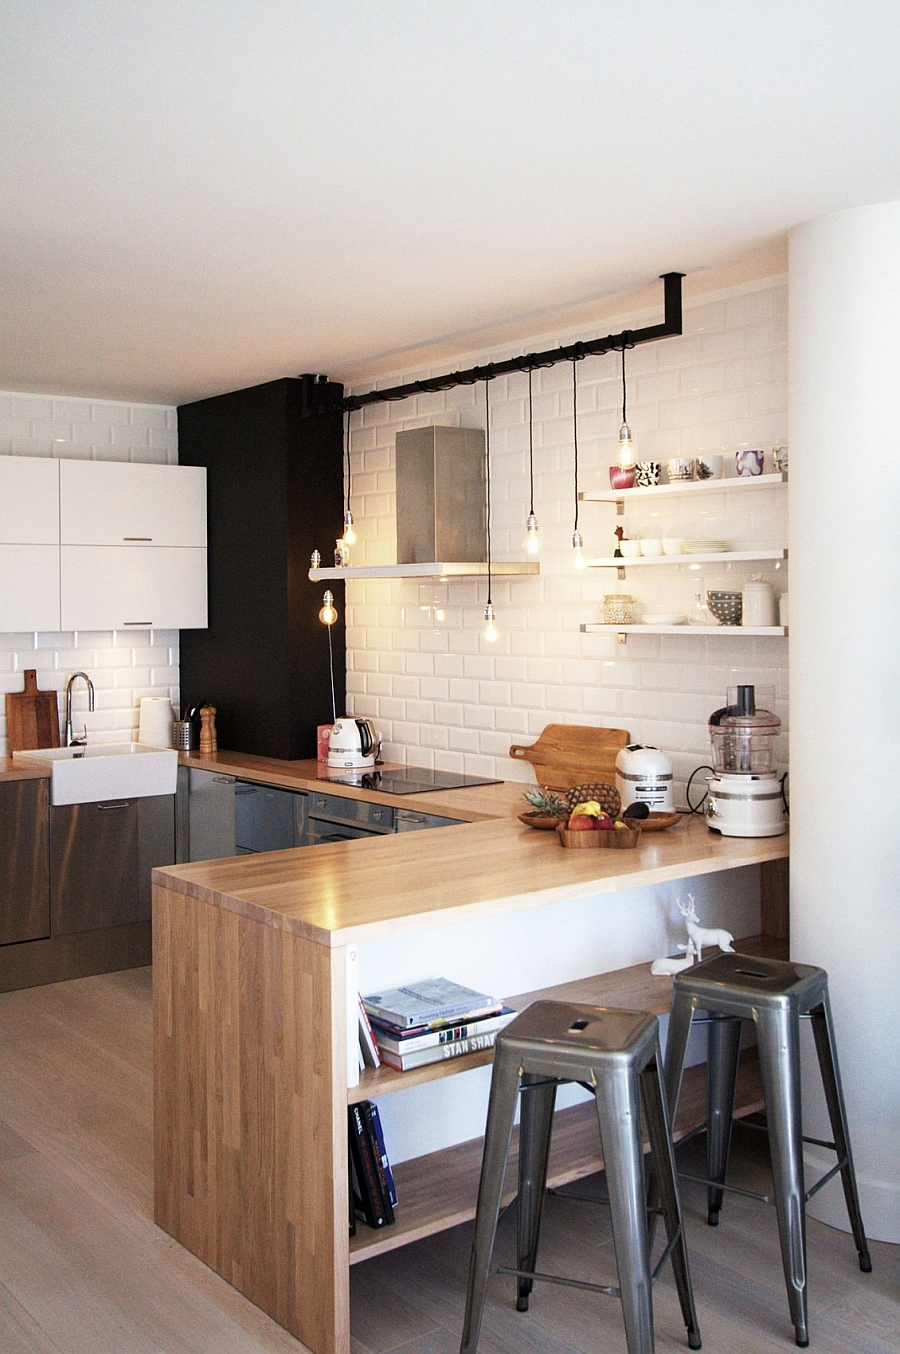 Simple backsplash for the kitchen with white tiles